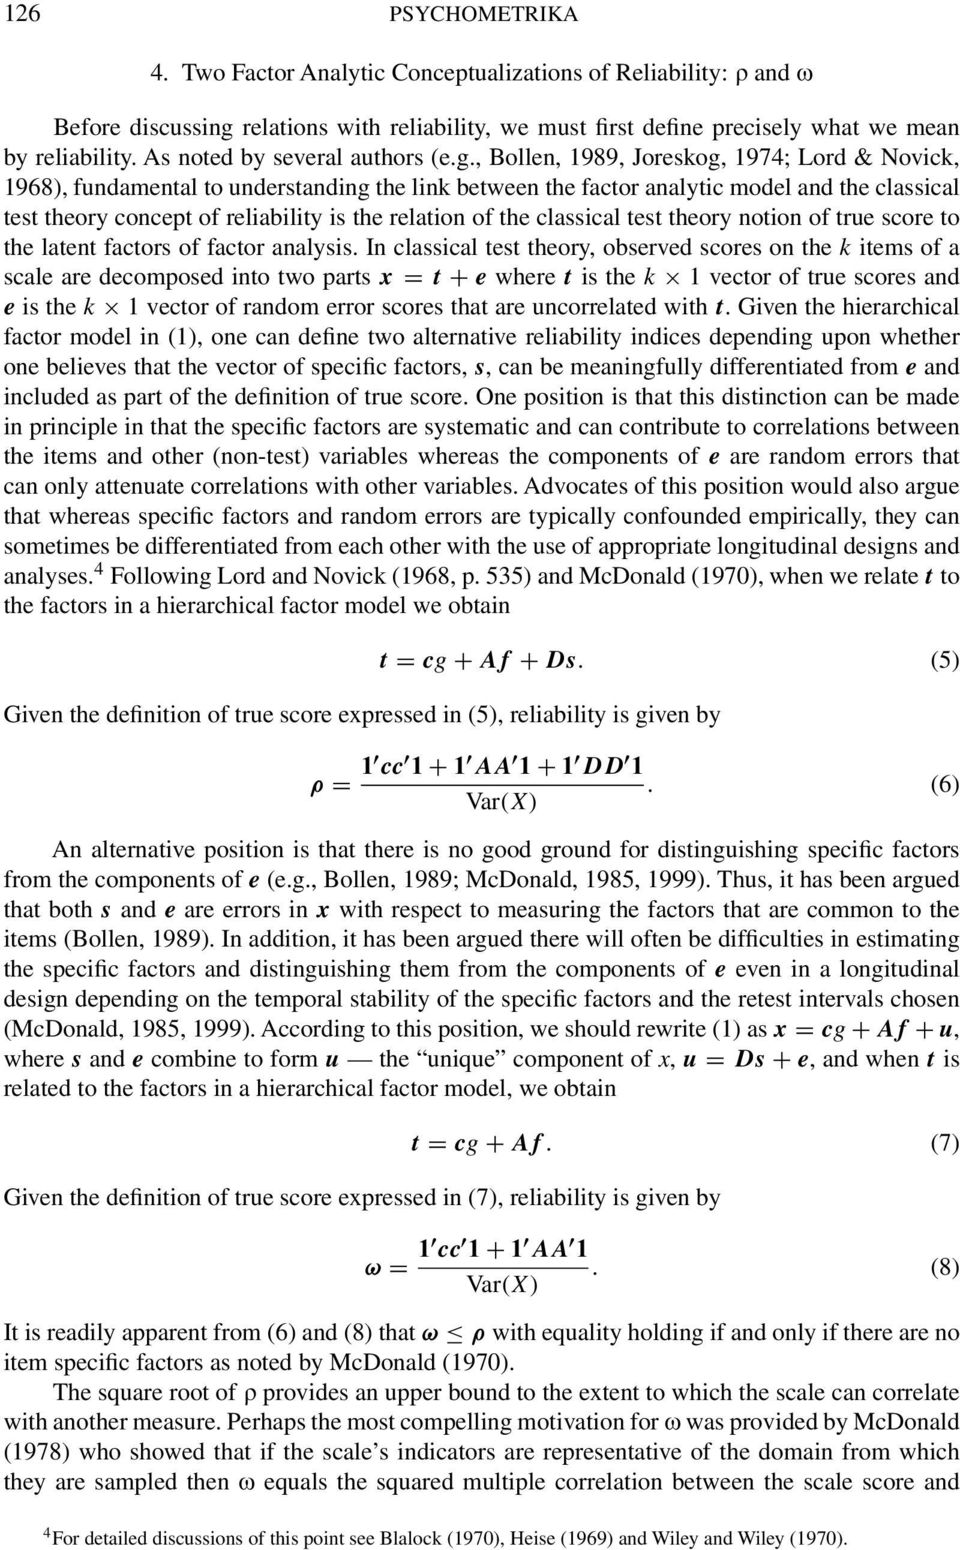 , Bollen, 989, Joreskog, 974; Lord & Novick, 968), fundamental to understanding the link between the factor analytic model and the classical test theory concept of reliability is the relation of the